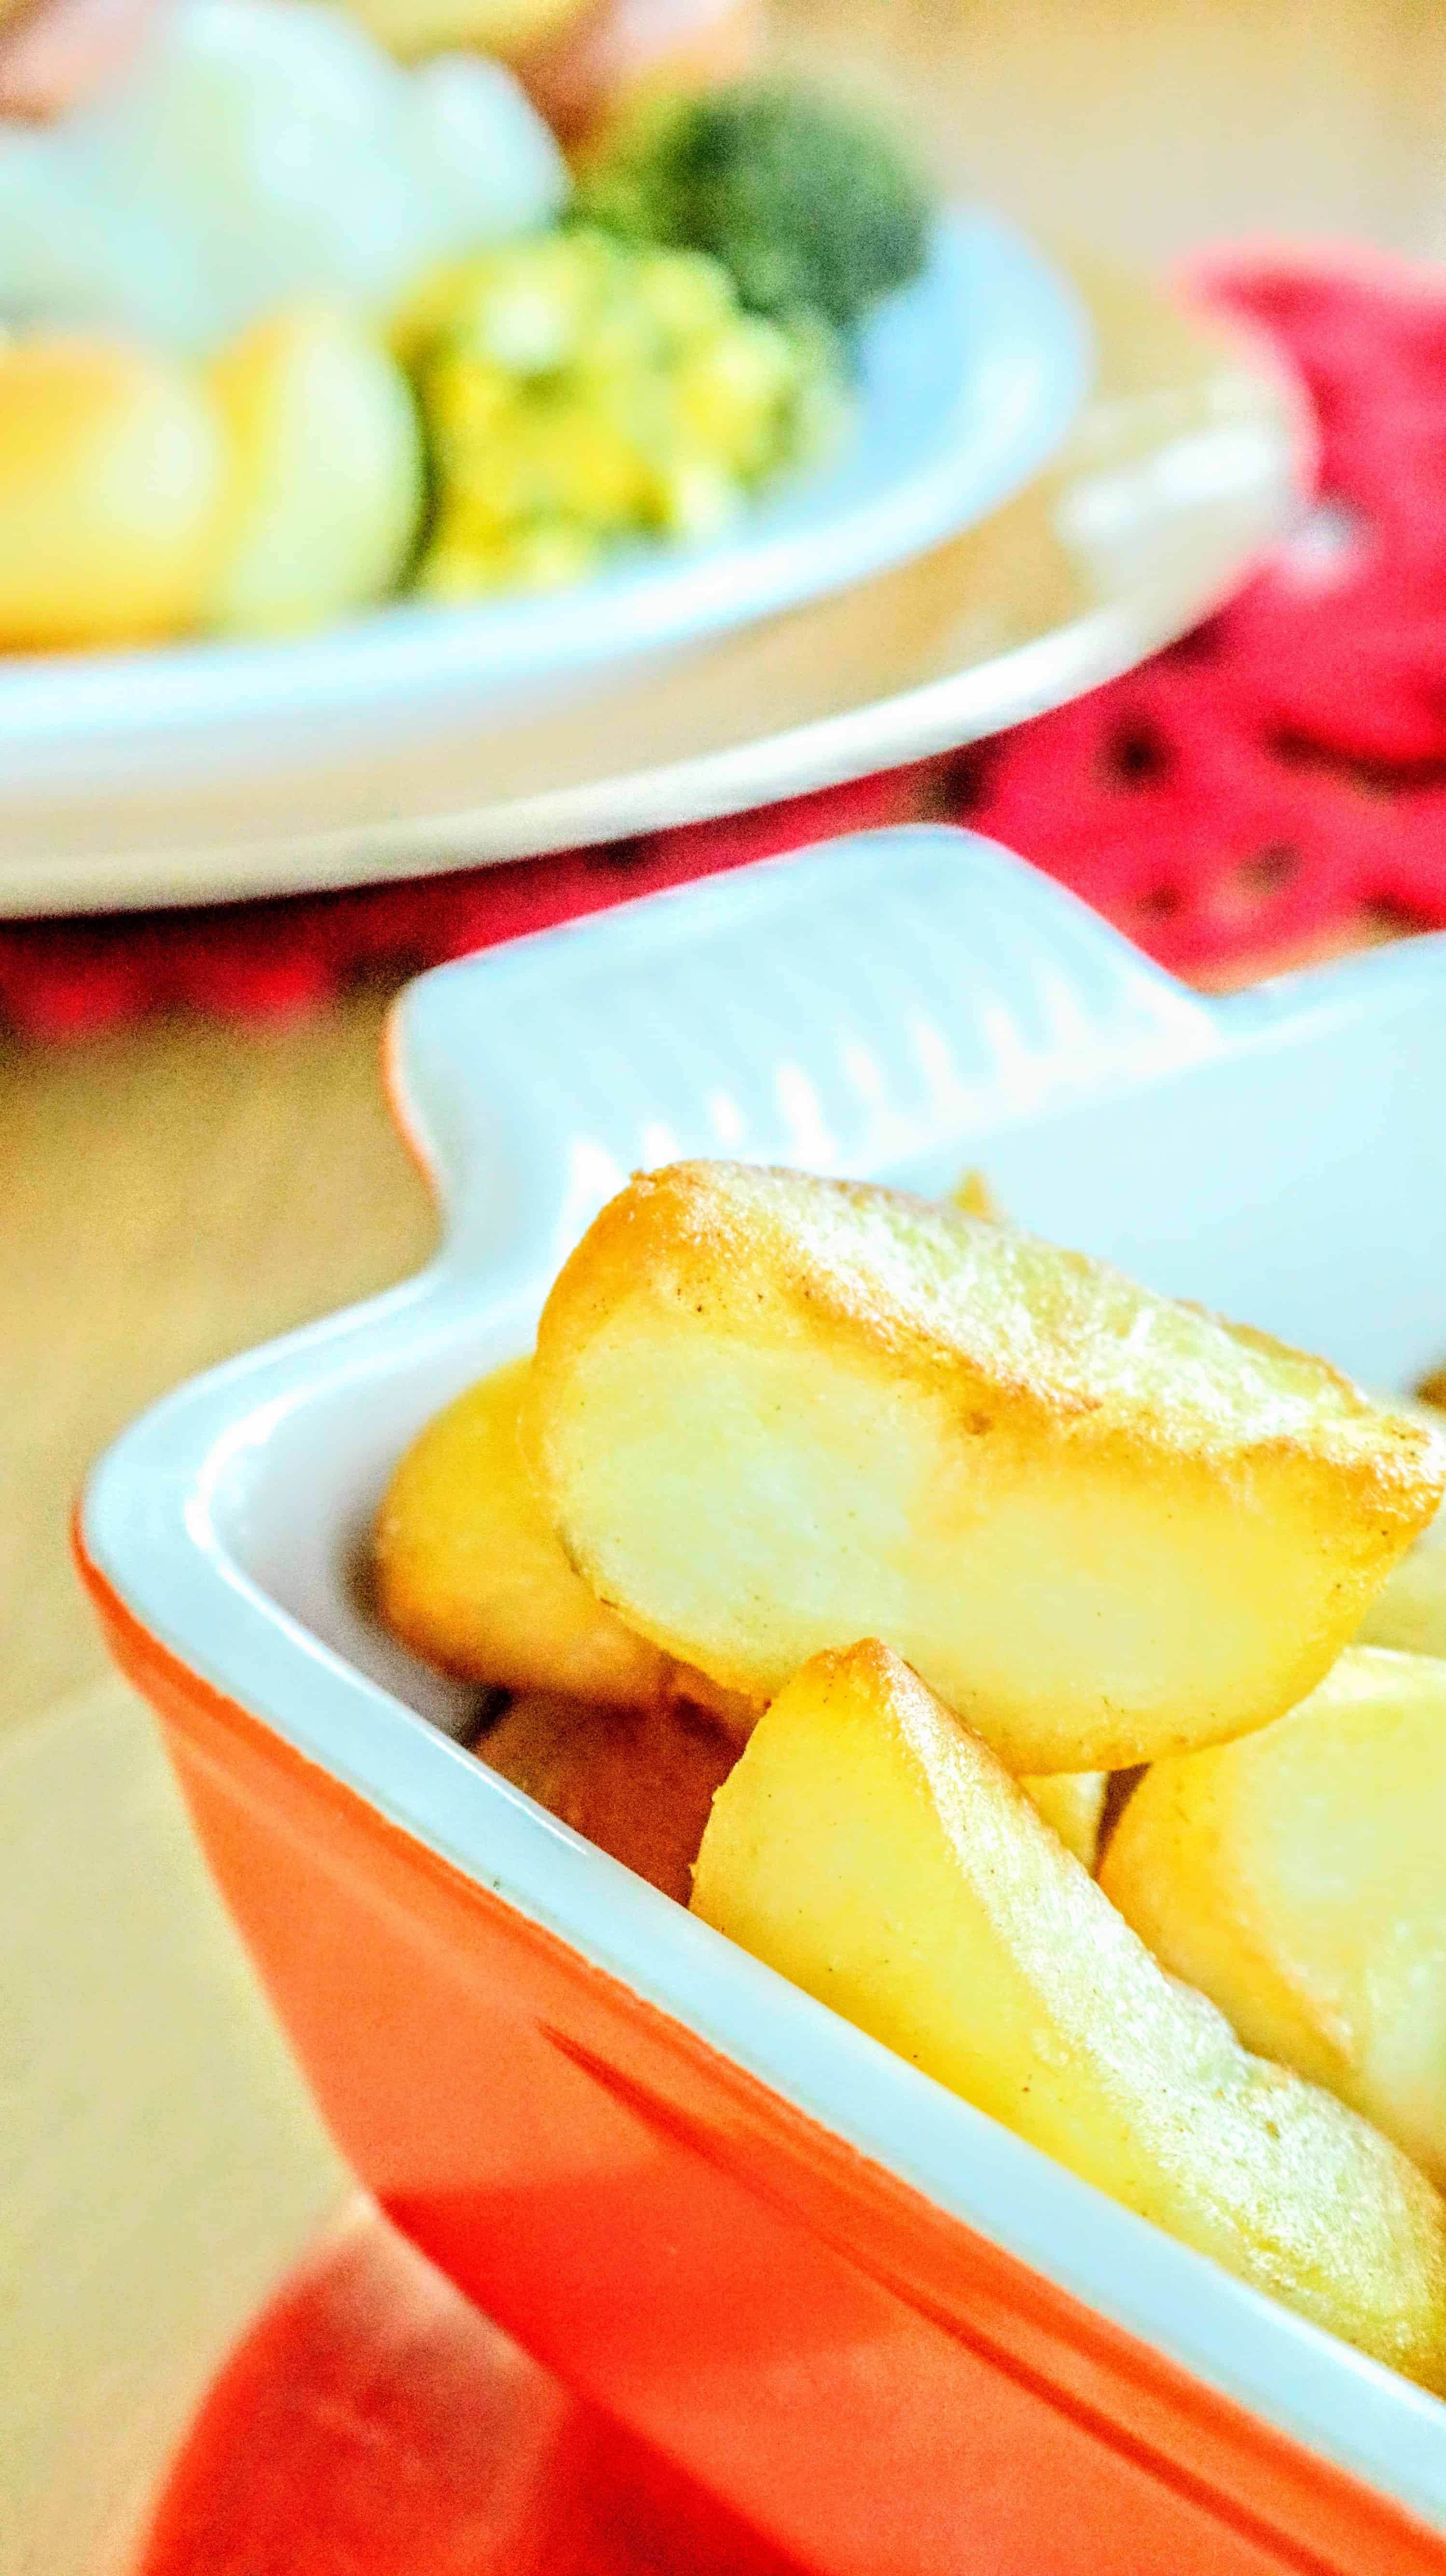 McCain Crispy & Fluffy Beef Roast Potatoes in Beef Dripping